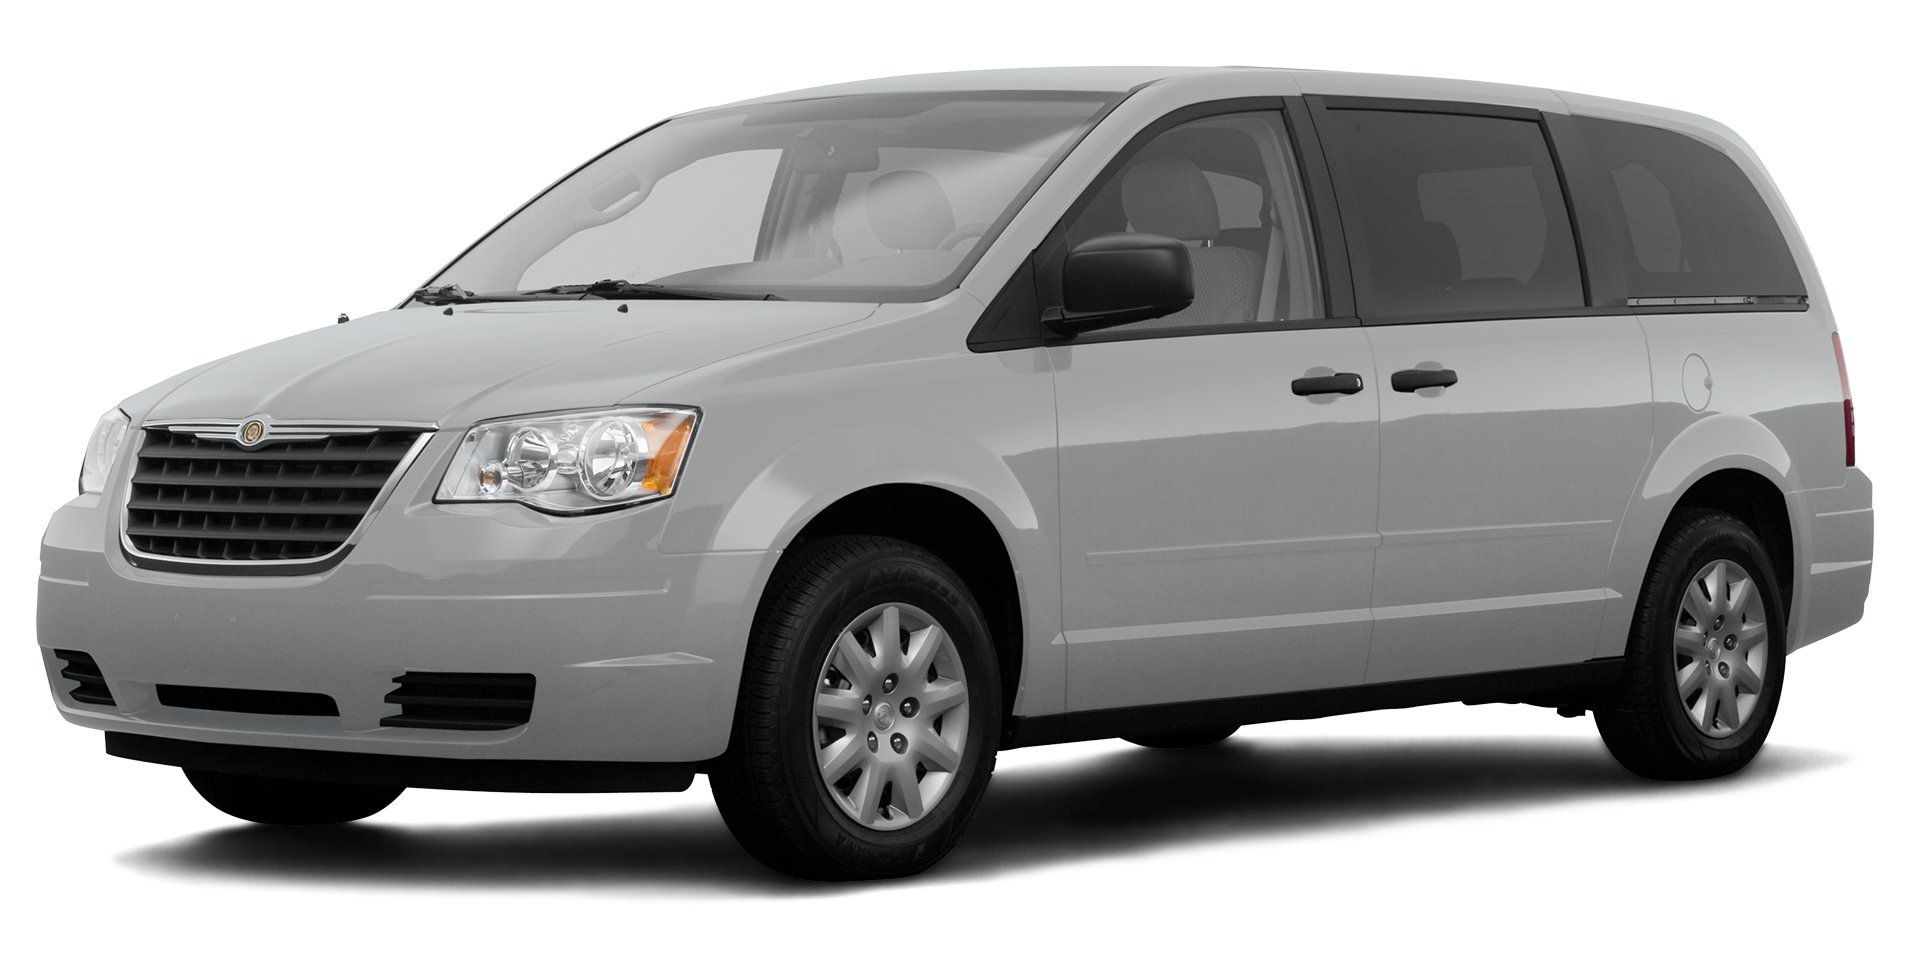 2009 Chrysler Town Country Reviews Images And Specs 1991 Lincoln Car Signature Series Fuse Box Lx 4 Door Wagon